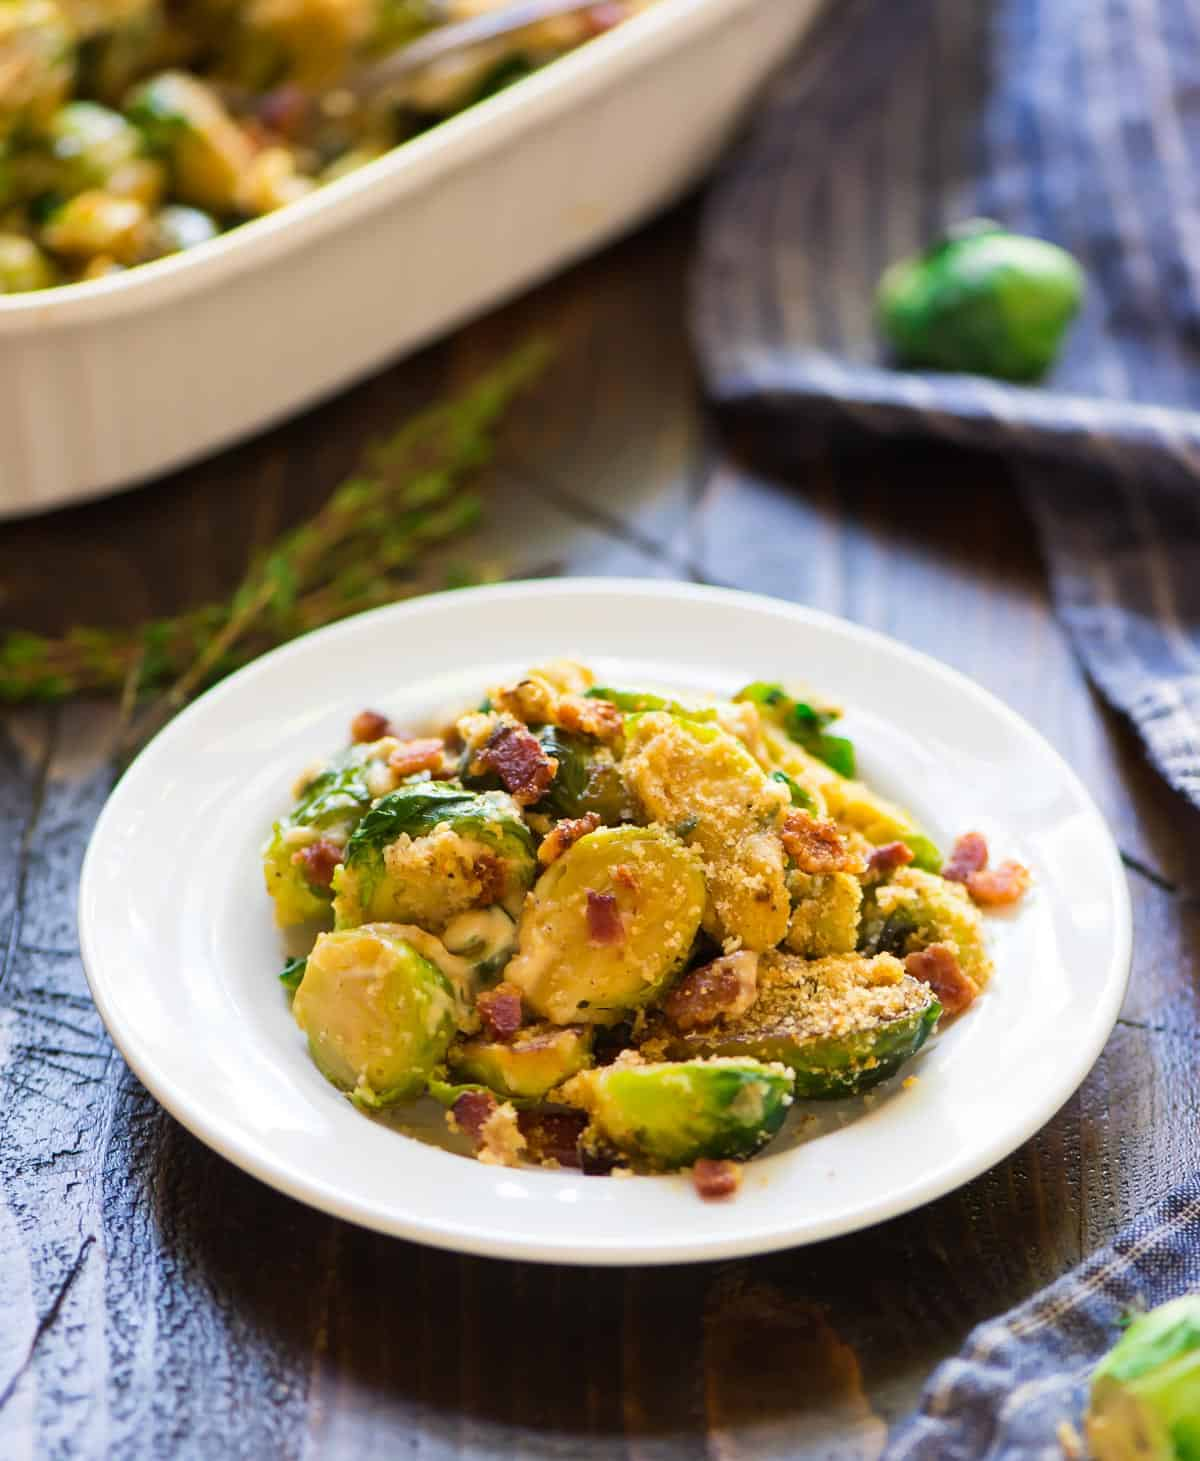 Brussels sprouts casserole on a plate